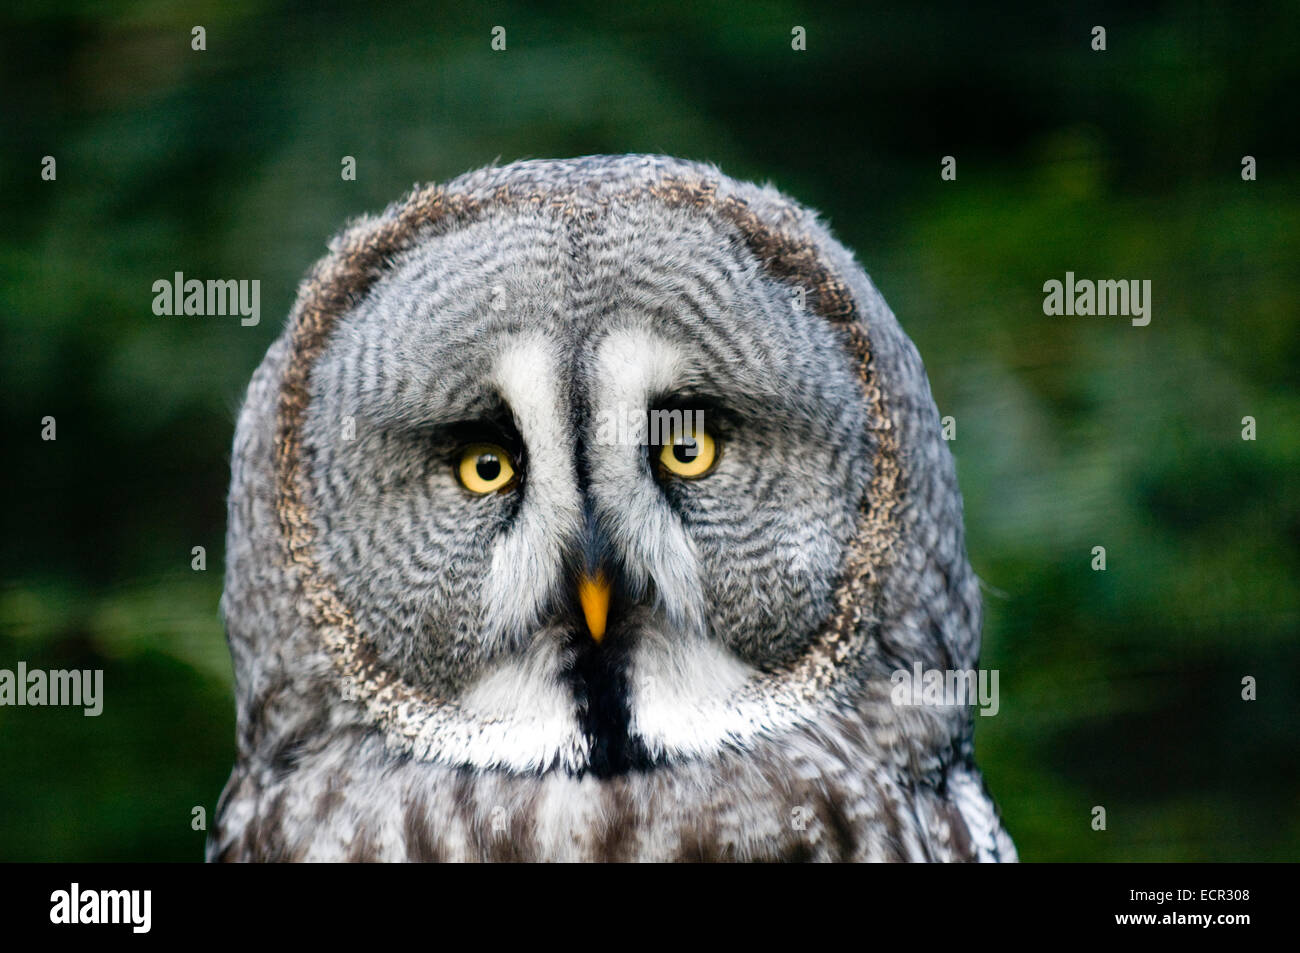 This is siberian gray owl. It is raptorial nocturnal bird. - Stock Image